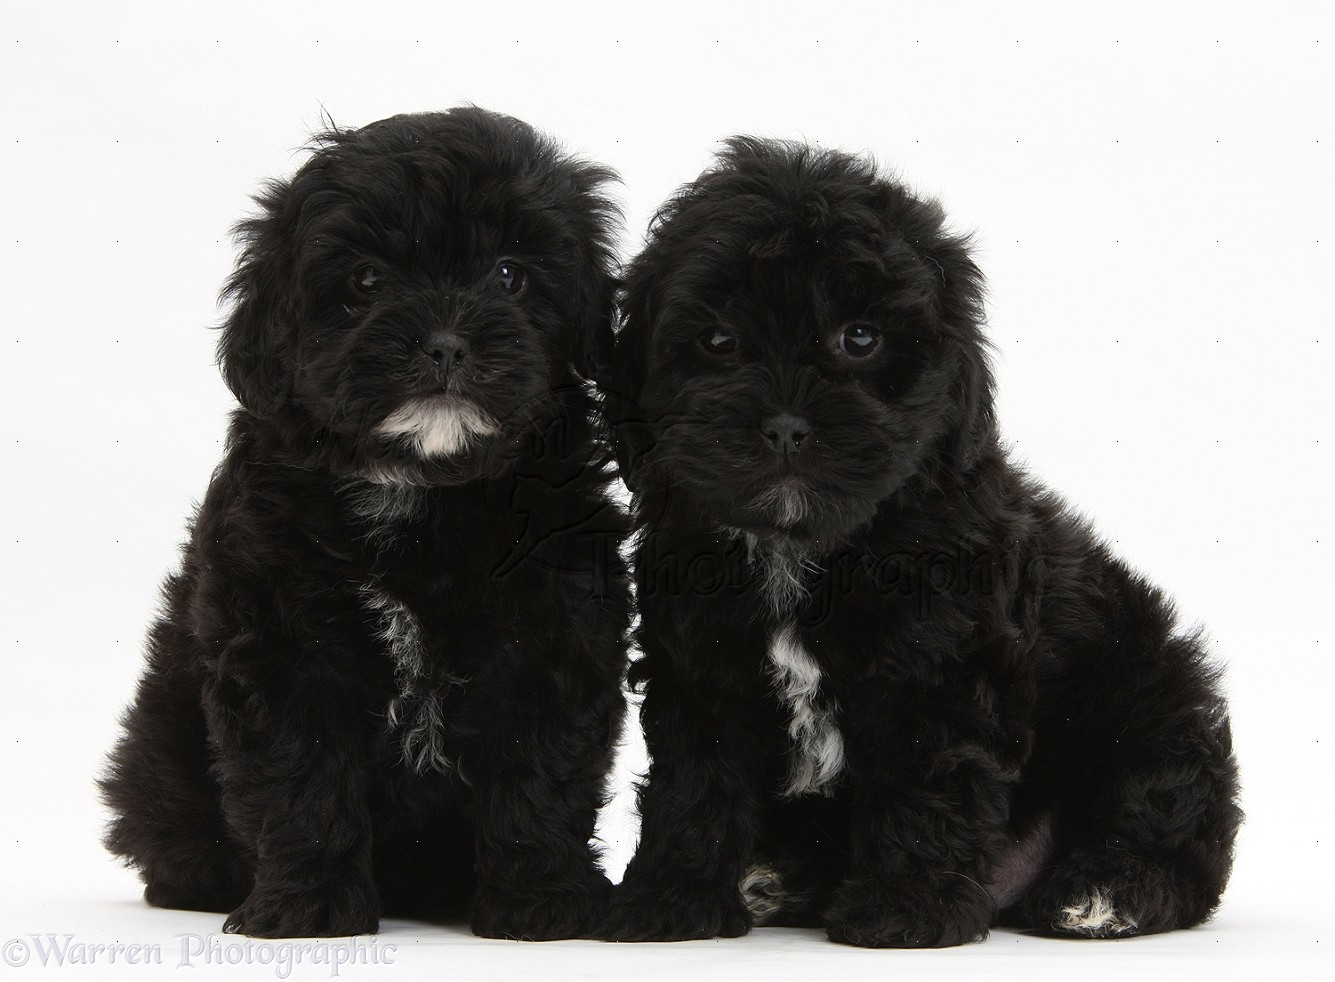 Black and White Shih Tzu Poodle Mix